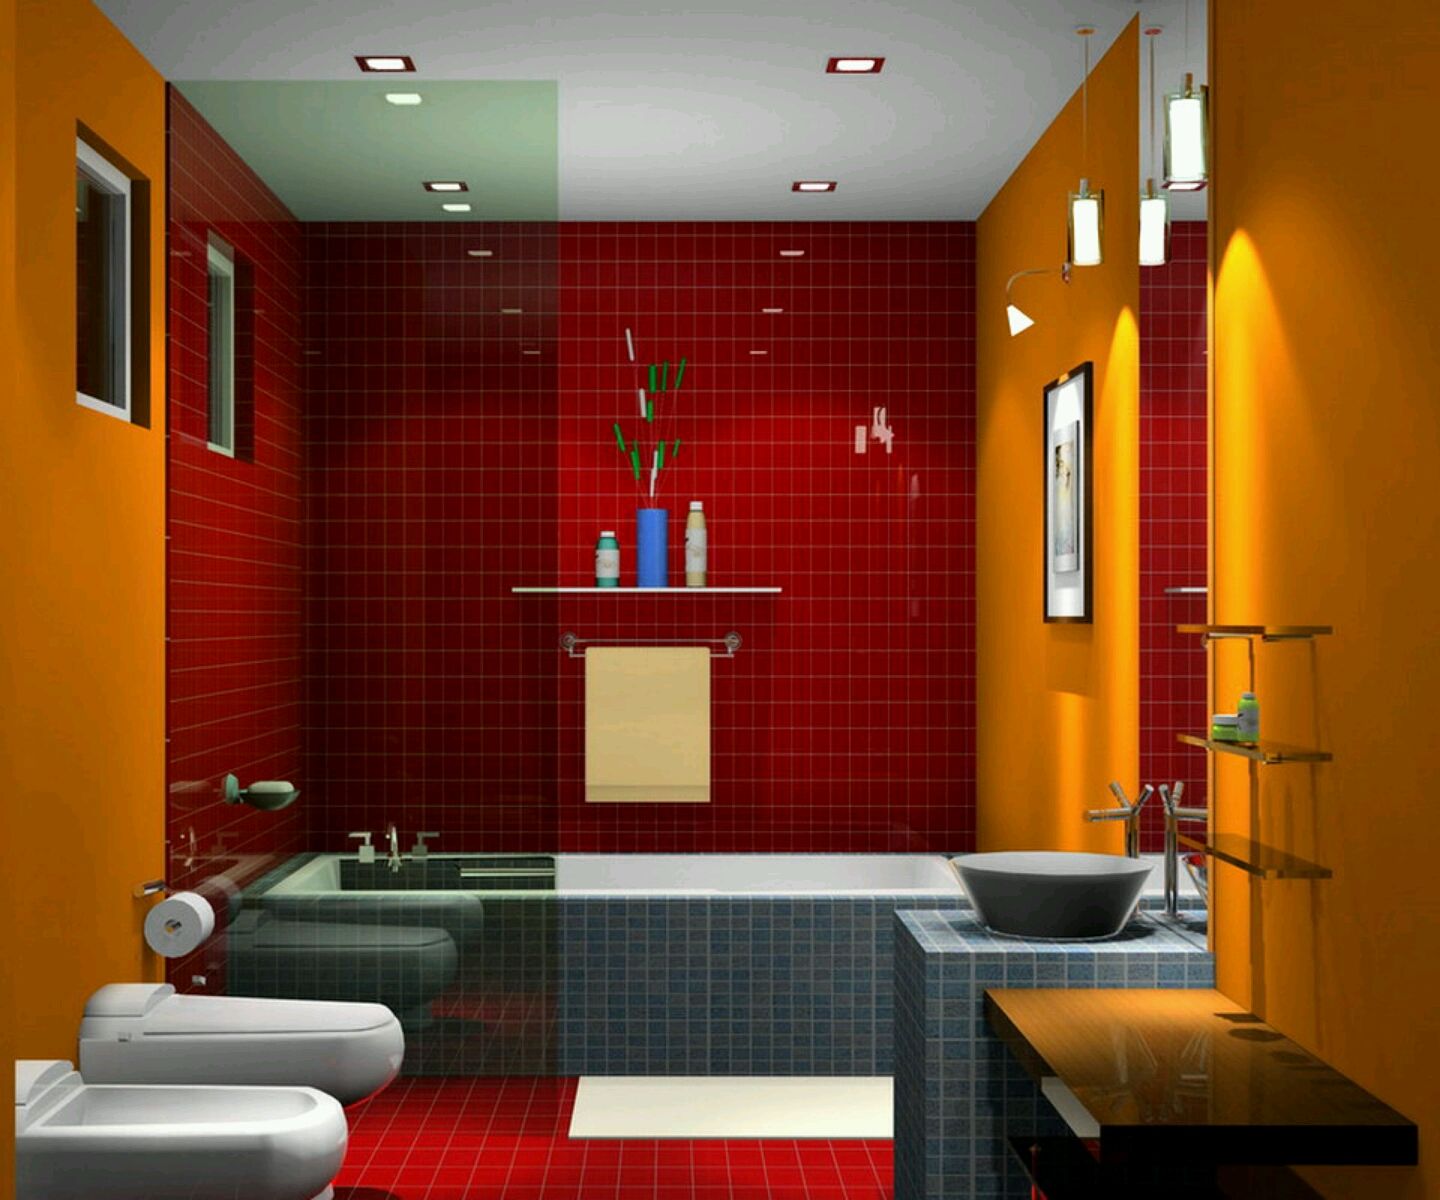 New home designs latest luxury bathrooms designs ideas for Bathroom interior design pakistan